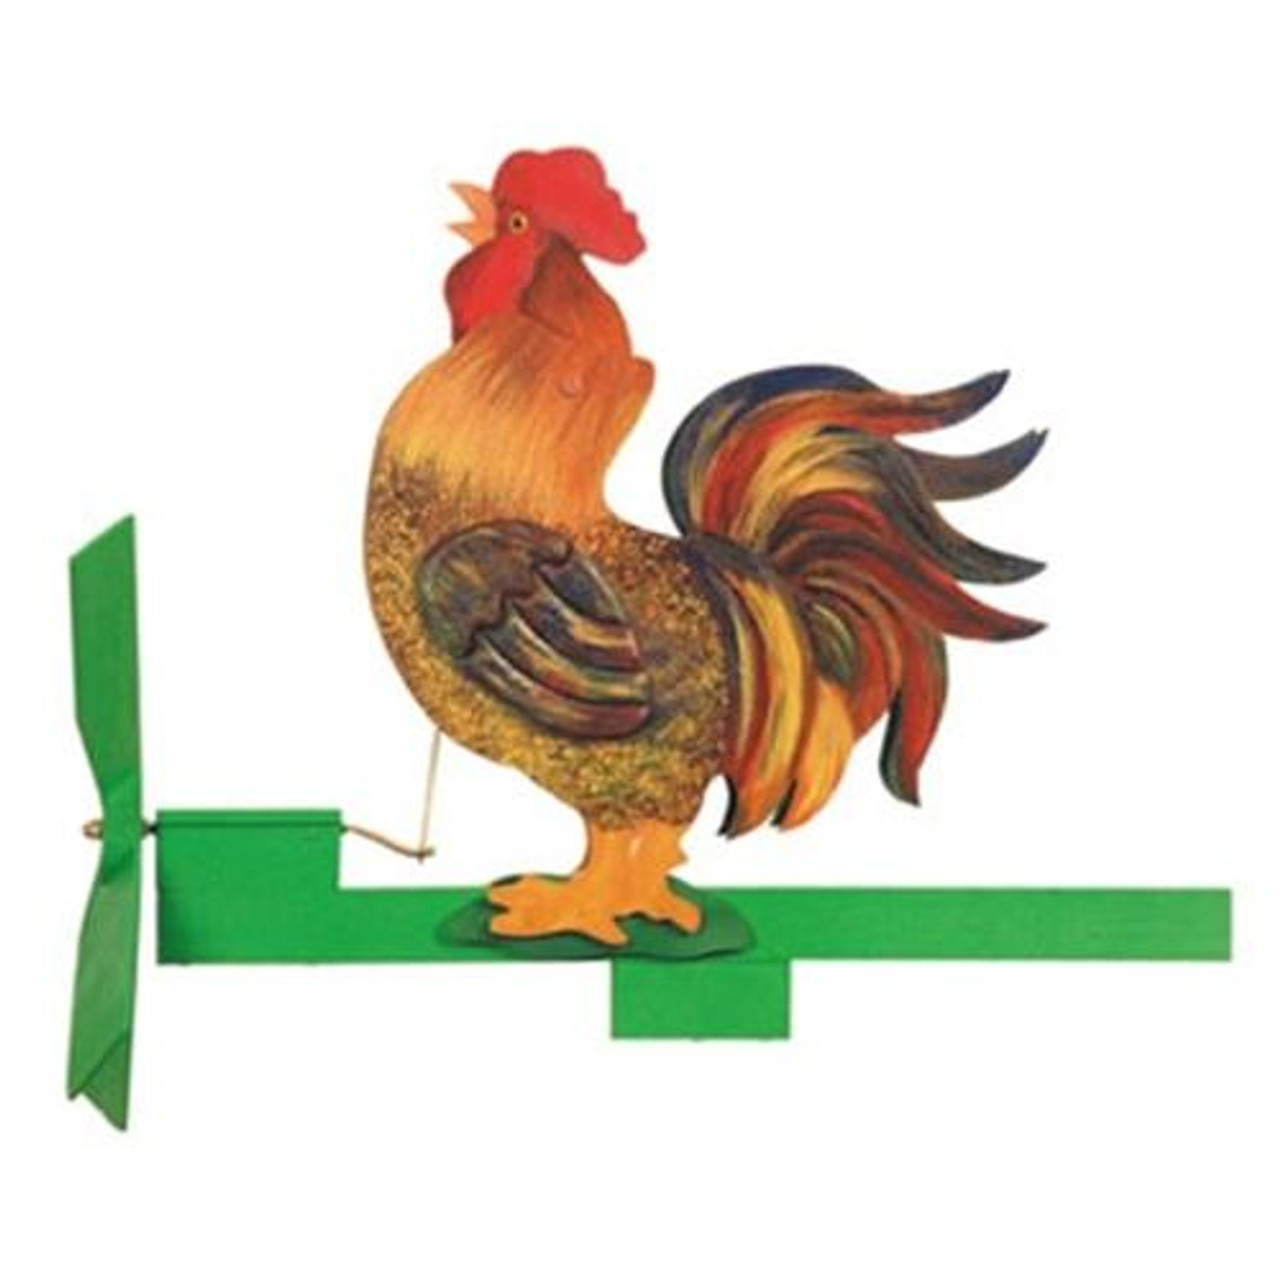 Cherry Tree Toys Rooster Crowing Whirligig Parts Kit